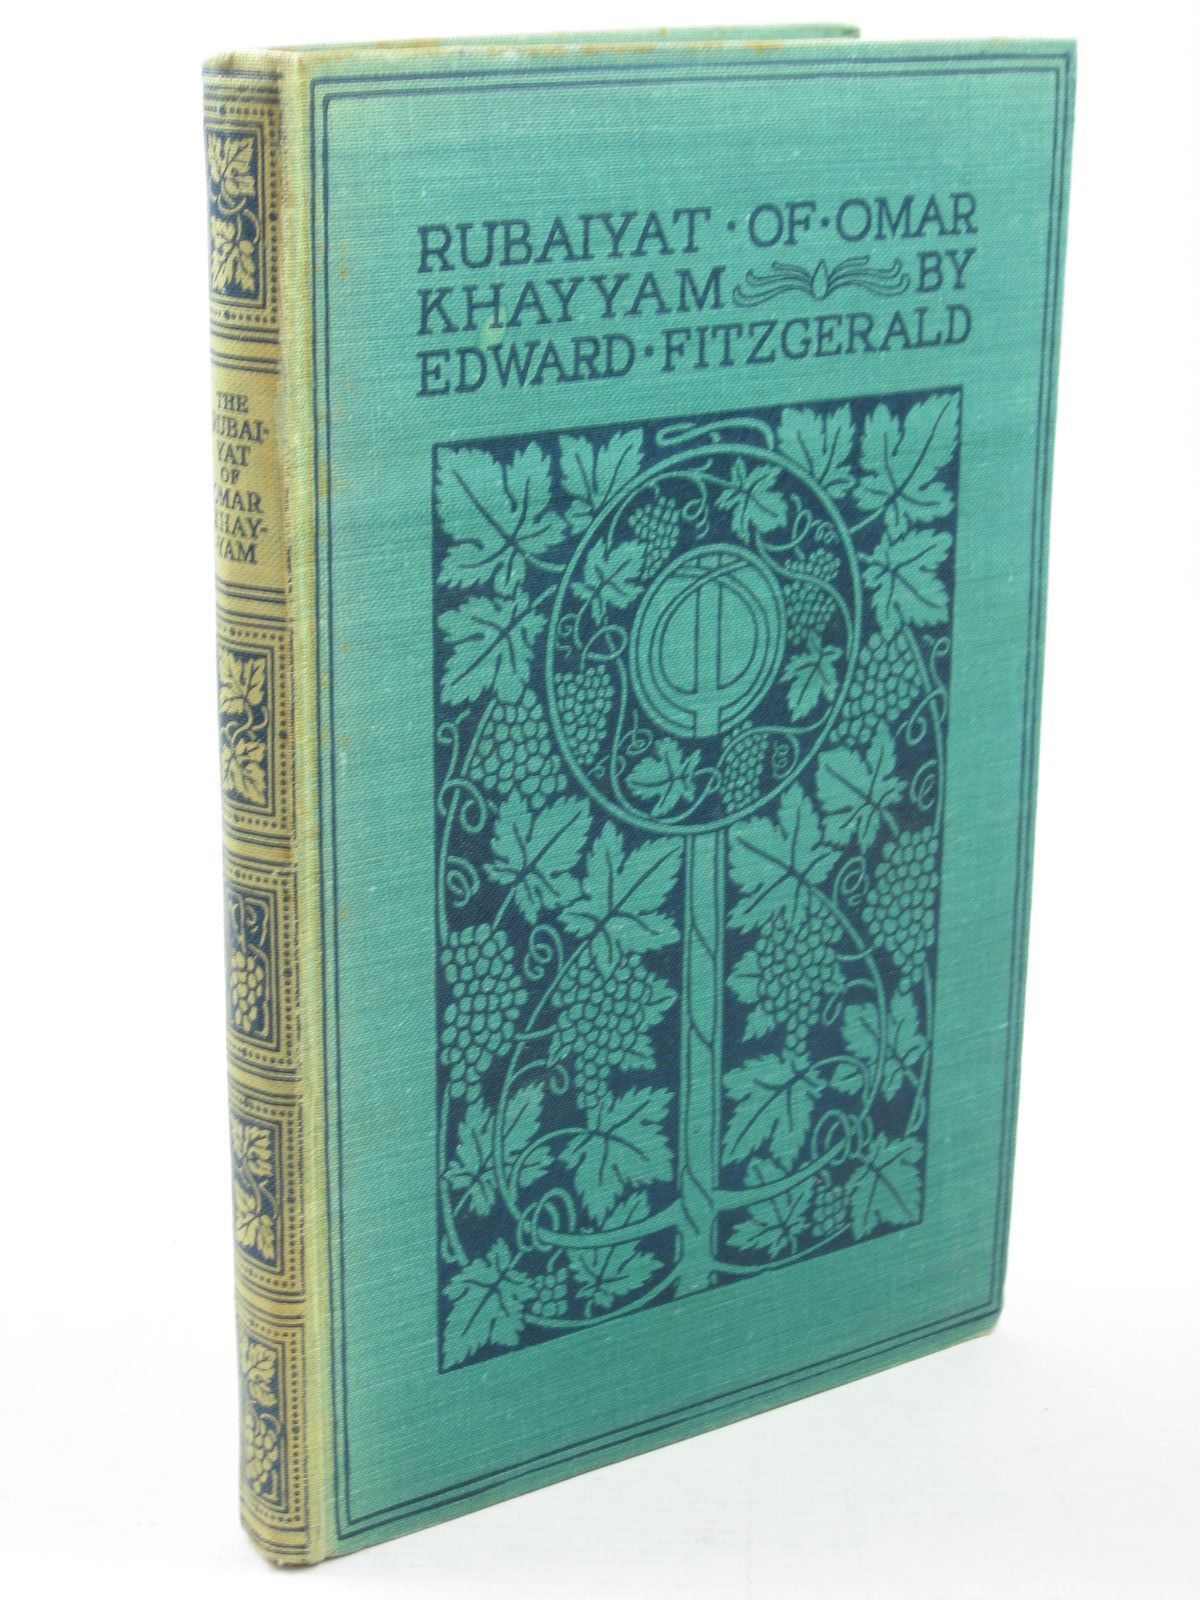 rubaiyat of omar khayyam Follow this link to see the latest news about rubaiyat research and other activities subscribe to the blog by e-mail and join in the comment with your own posts this is the full text of the 75 quatrains published in fitzgerald's first edition of the rubaiyat of omar khayyam.